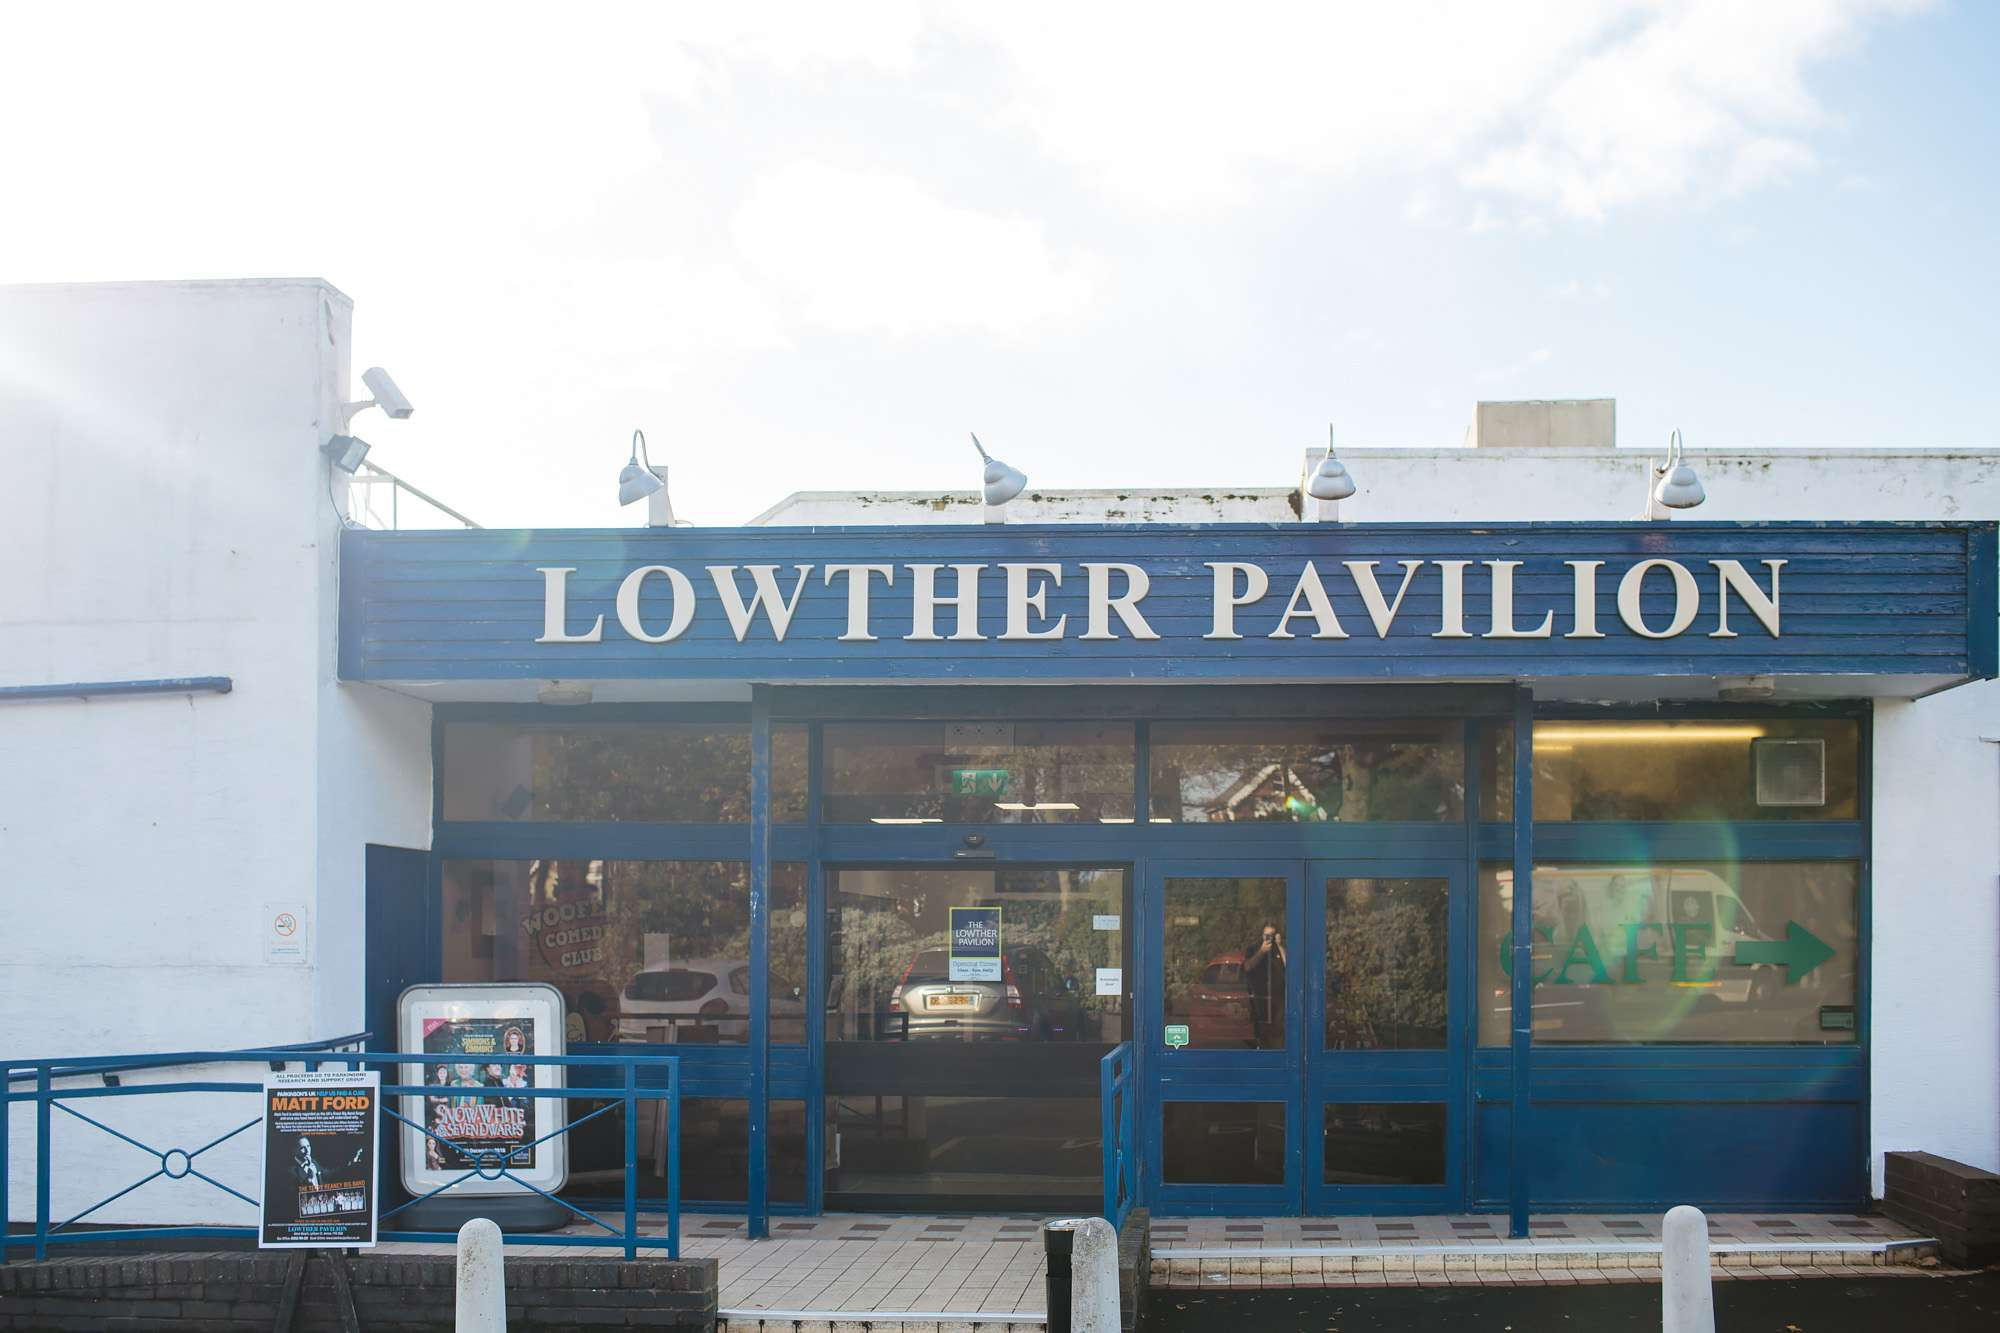 Lowther Pavilion Blackpool